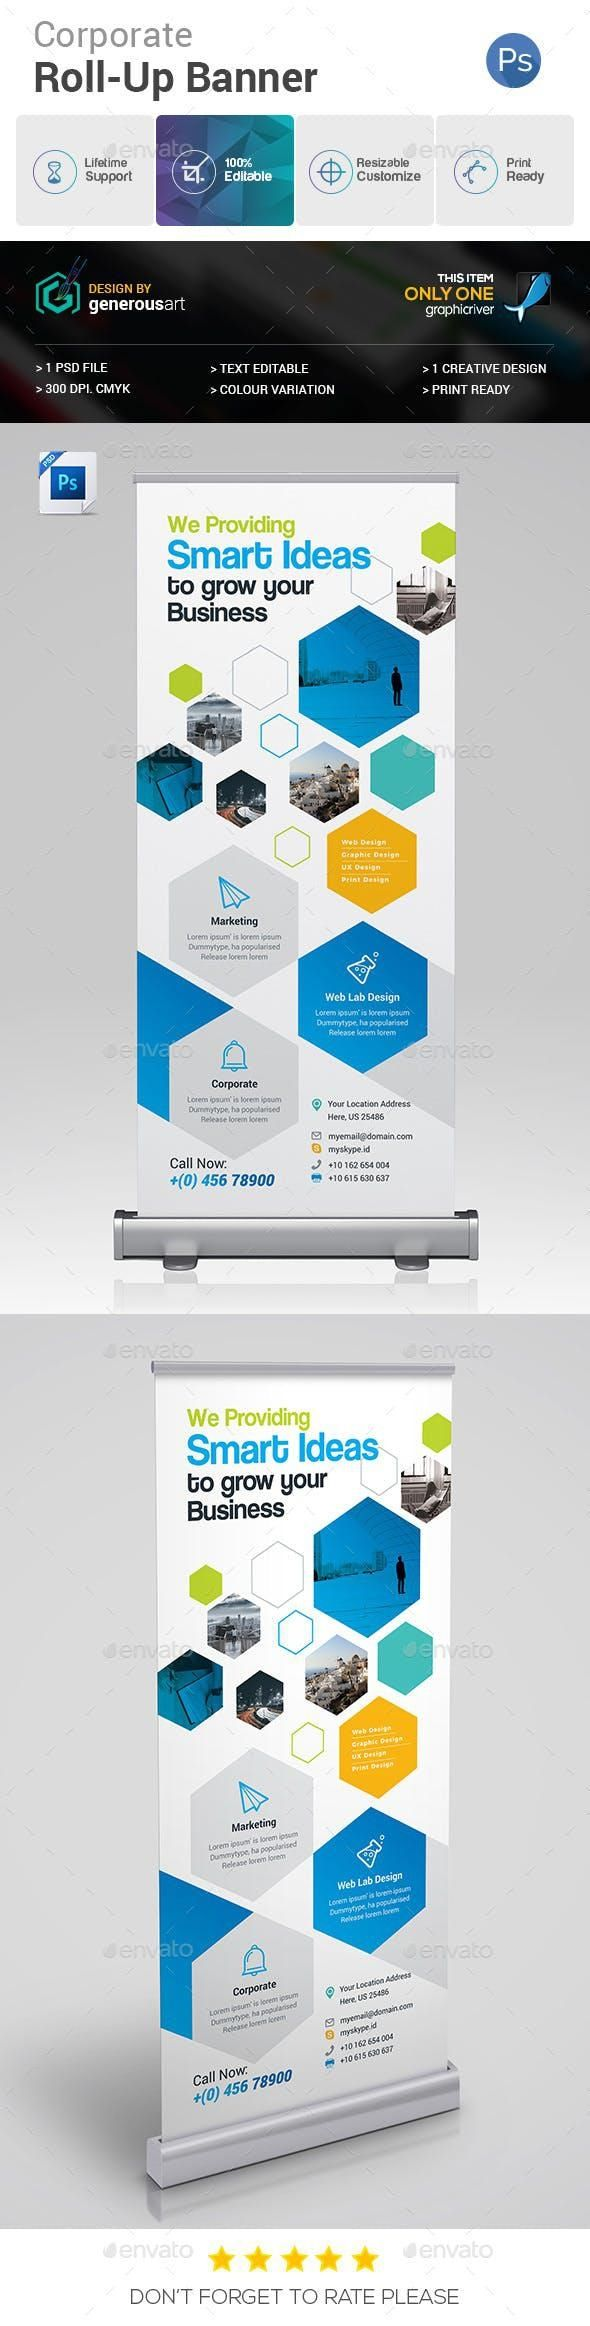 Roll-Up Banner for $6 #PrintDesign #designresource #GraphicDesign #PrintTemplate...